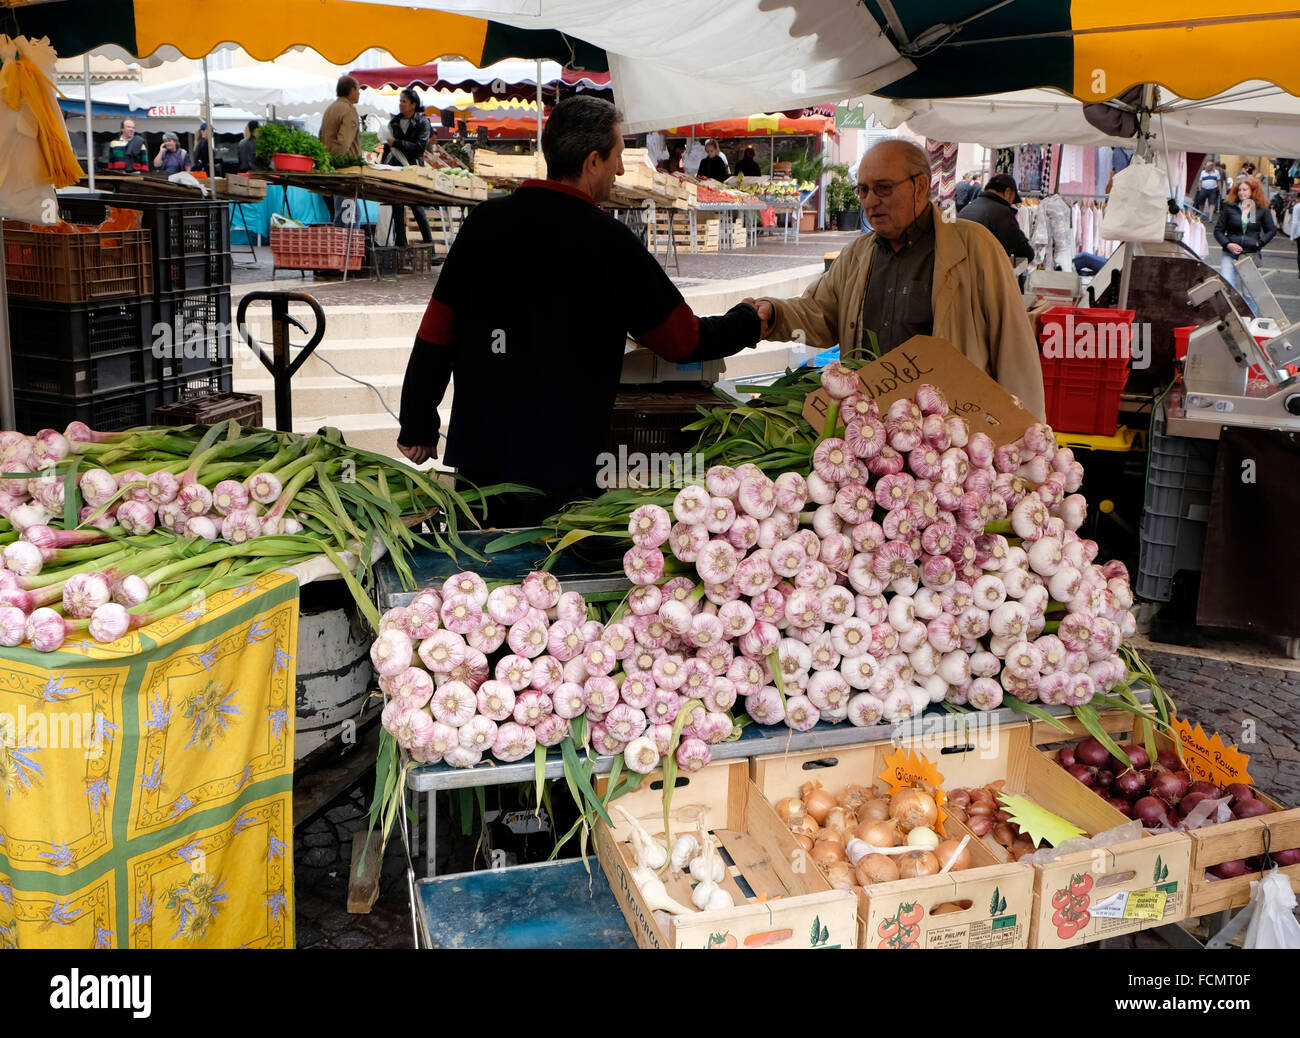 Stall-holder shaking hands with acquaintance at a garlic stall in the market at Fréjus, South of France. - Stock Image